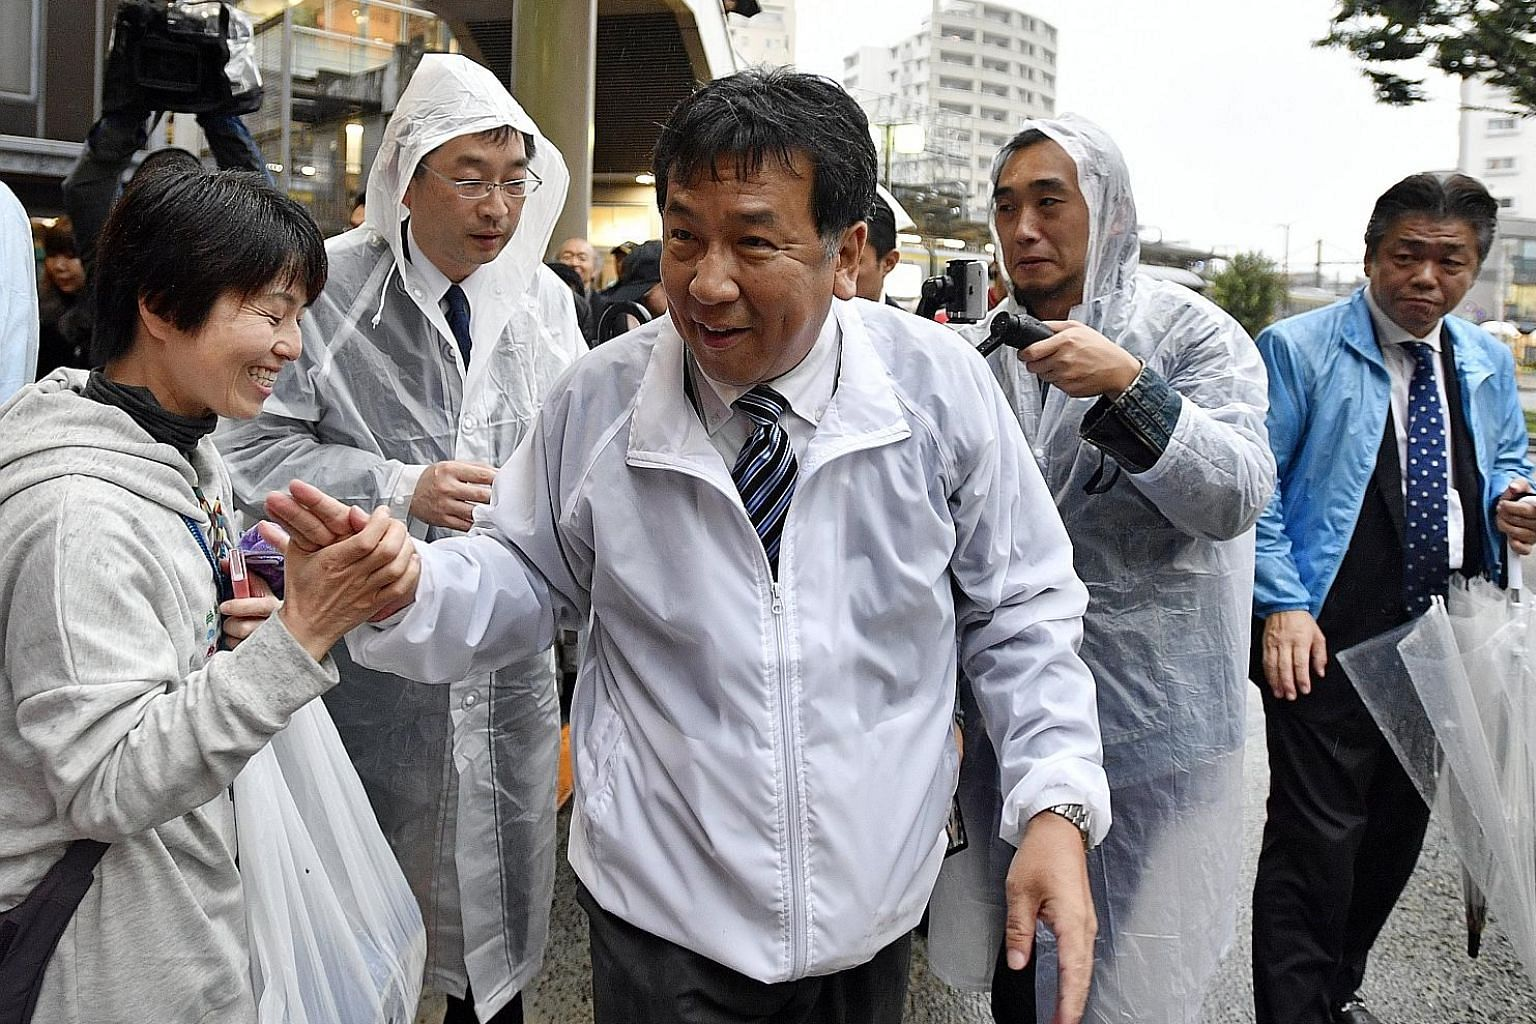 Constitutional Democratic Party of Japan leader Yukio Edano (with striped tie) greeting a supporter after he delivered a speech for his party's candidate in Tokyo on Oct 21. The one-month-old party fielded 78 candidates in the Oct 22 elections and wo